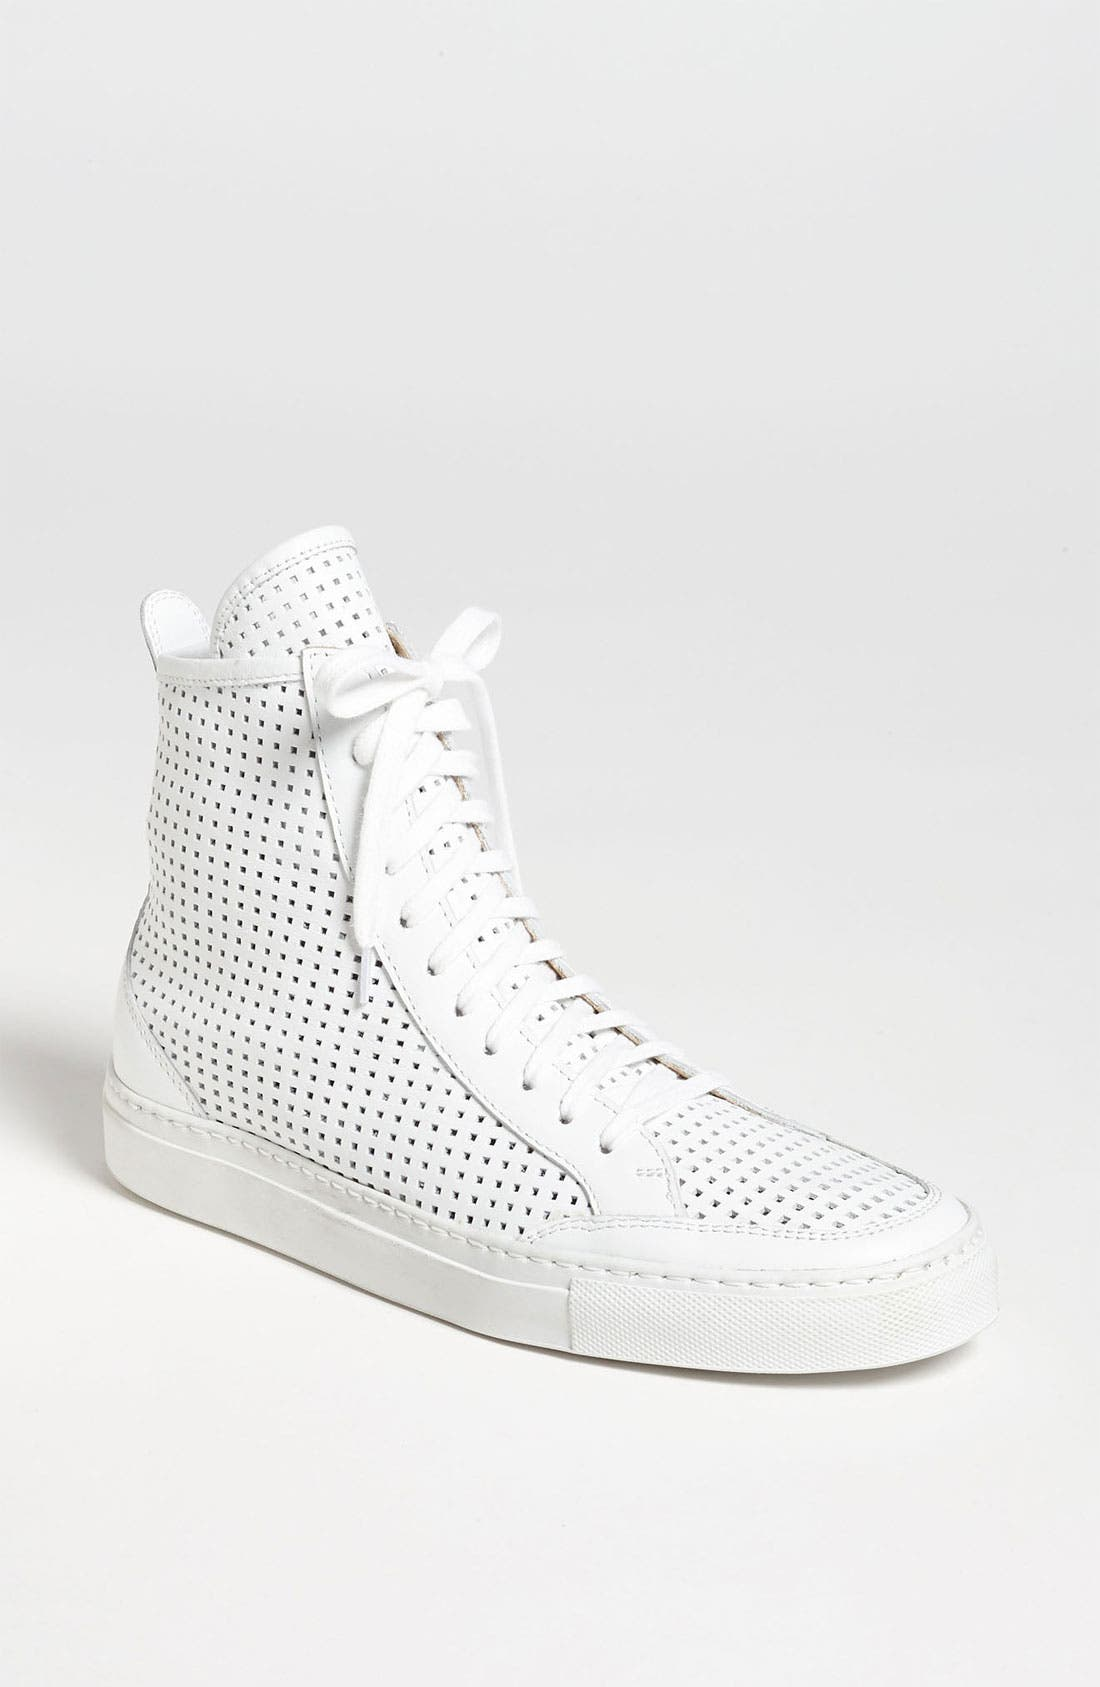 Alternate Image 1 Selected - MM6 Maison Margiela High Top Sneaker